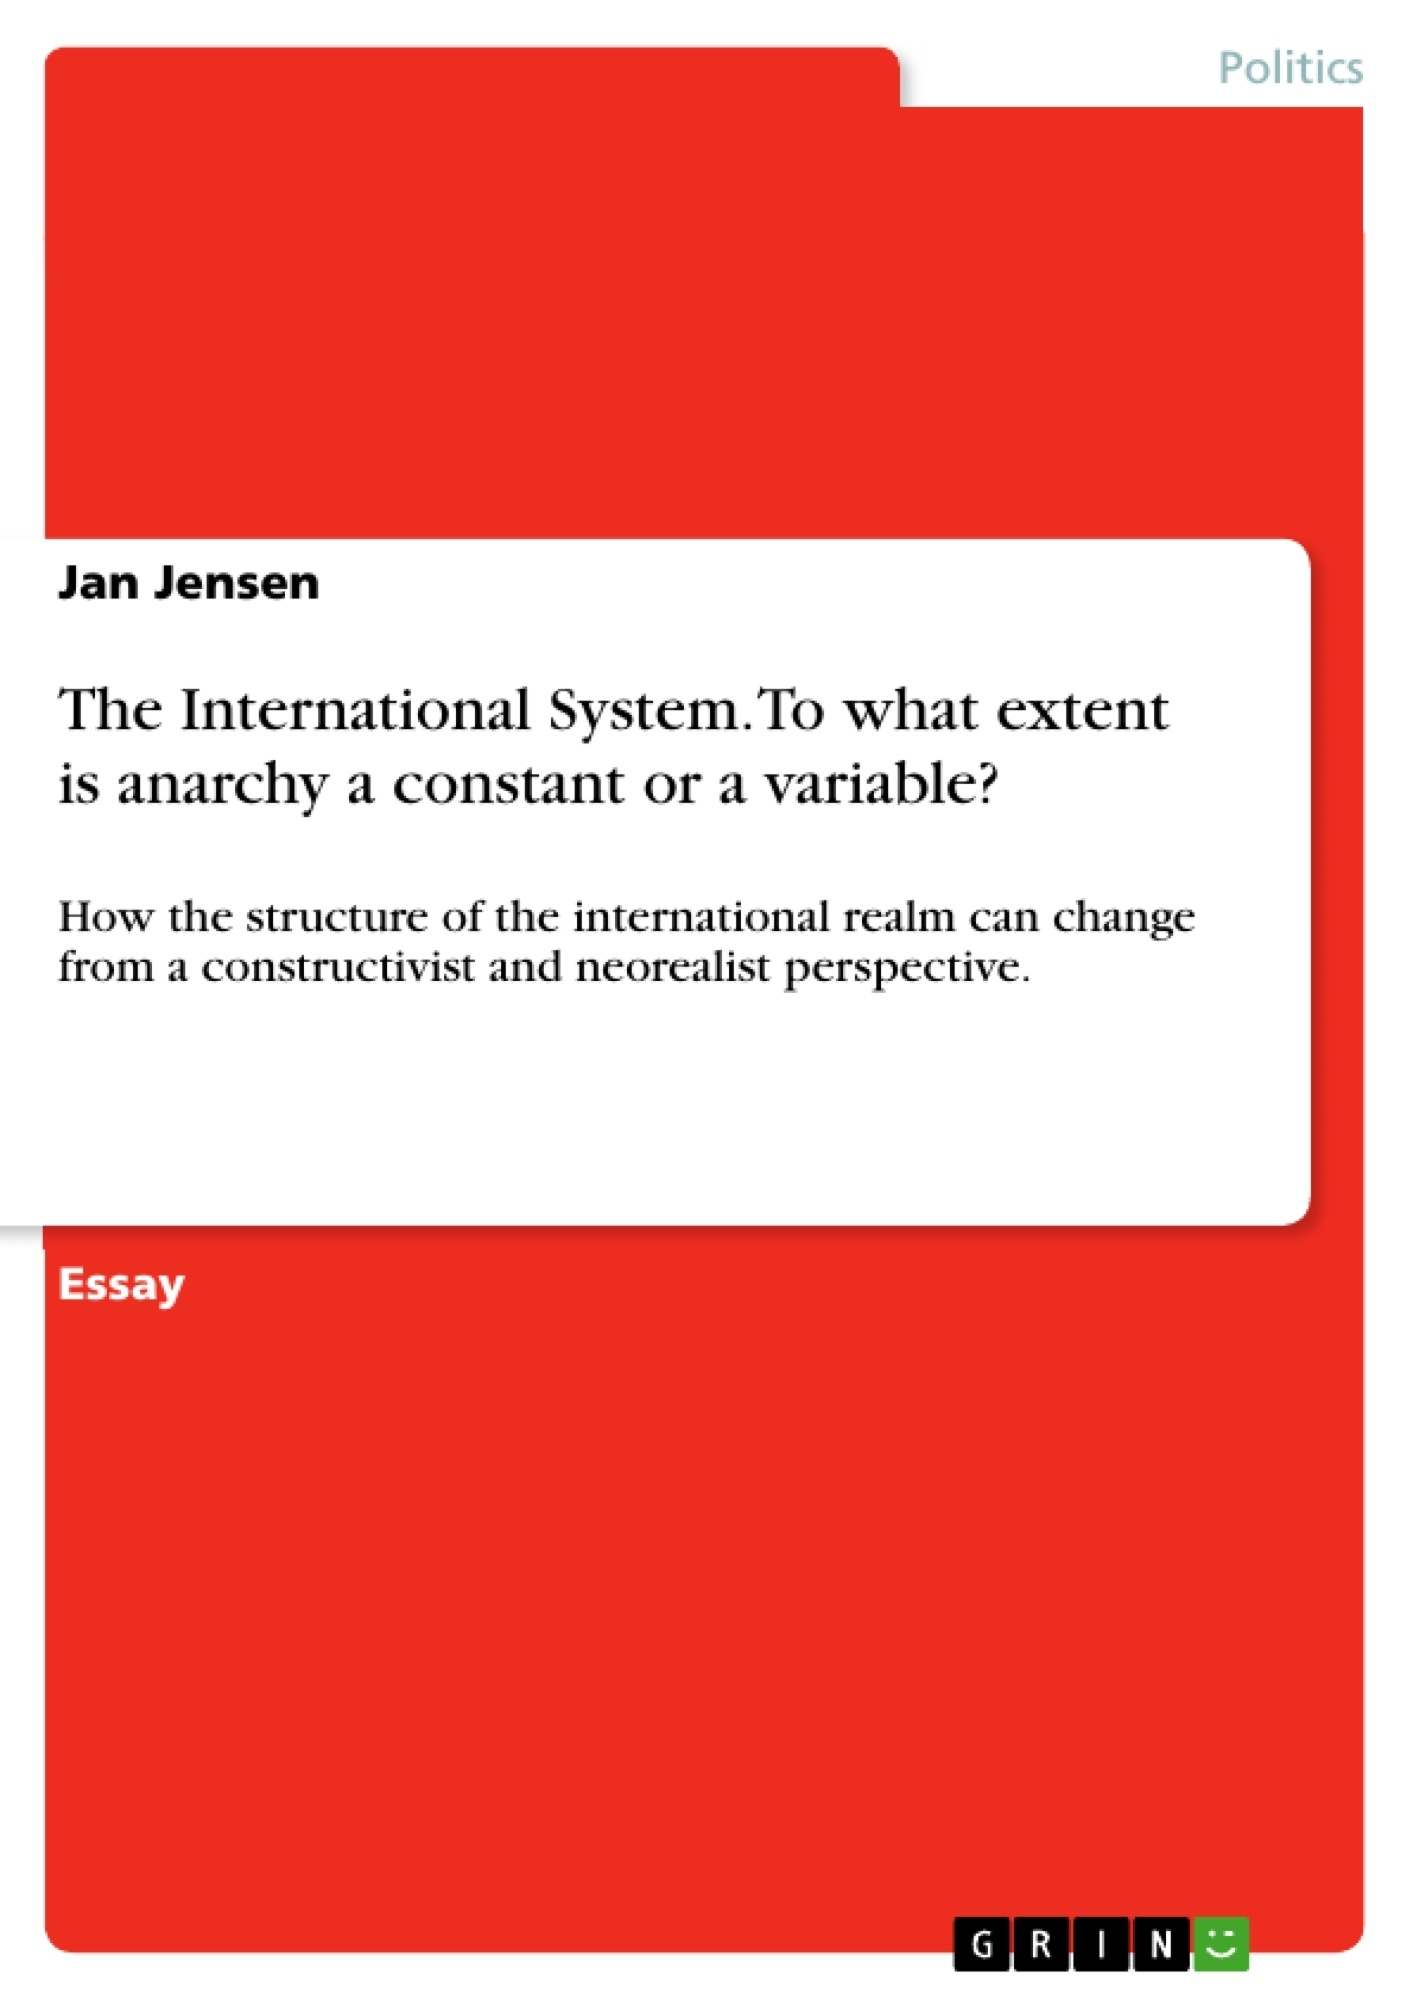 Title: The International System. To what extent is anarchy a constant or a variable?